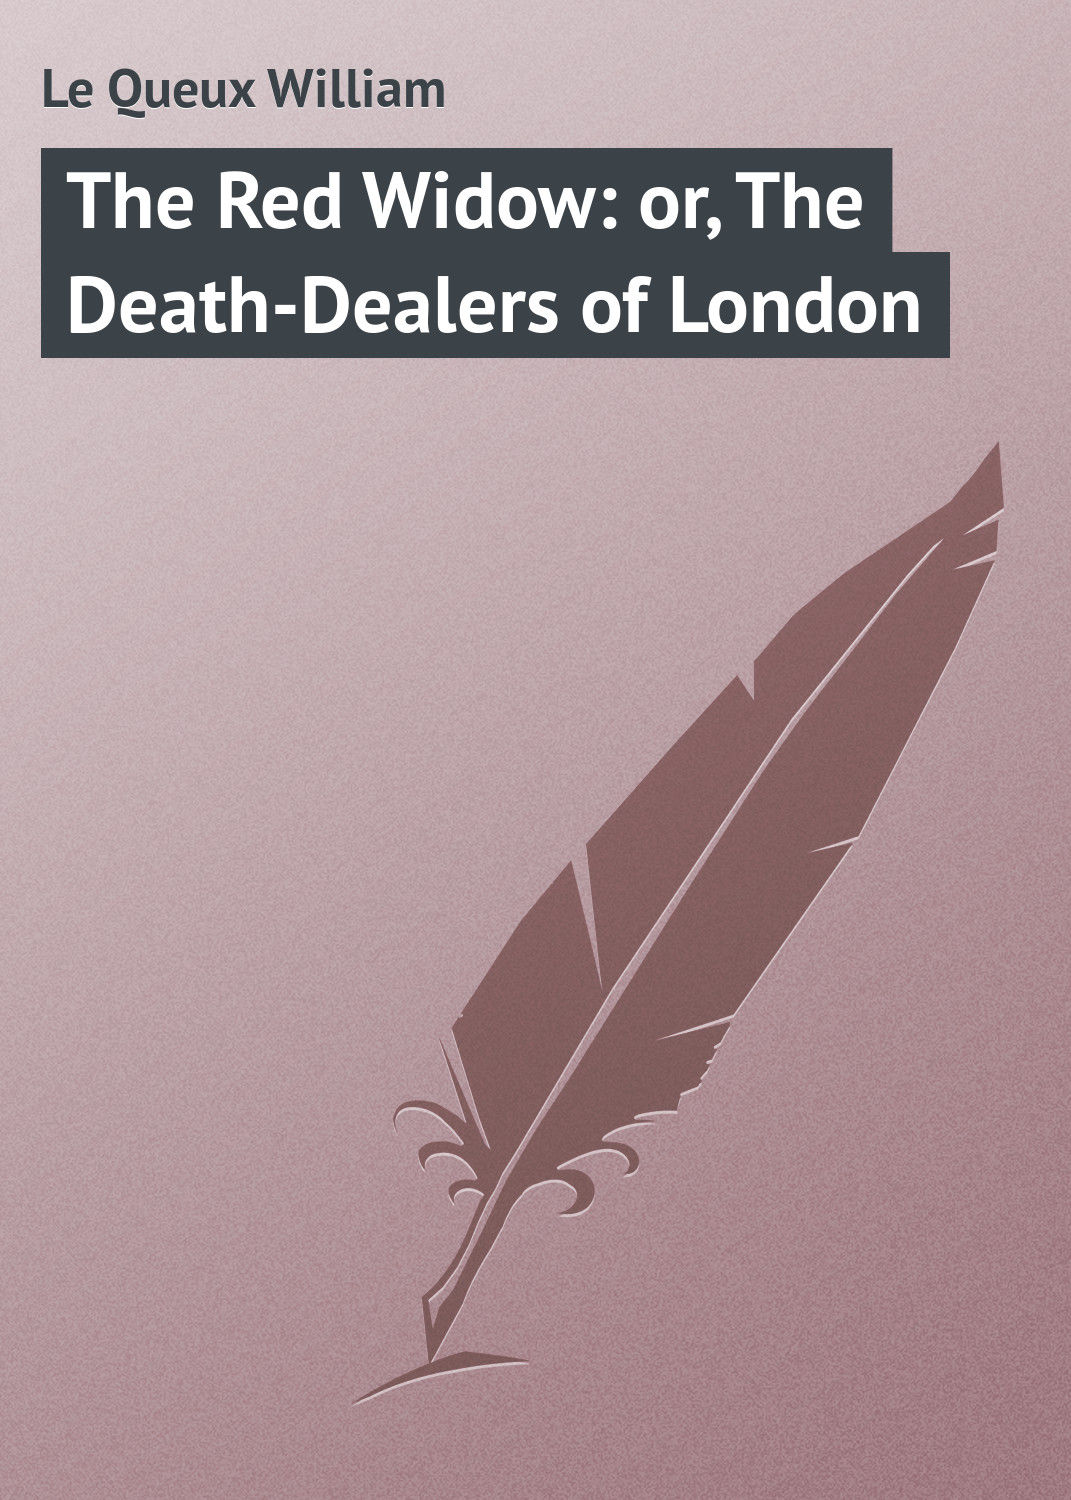 Le Queux William The Red Widow: or, The Death-Dealers of London